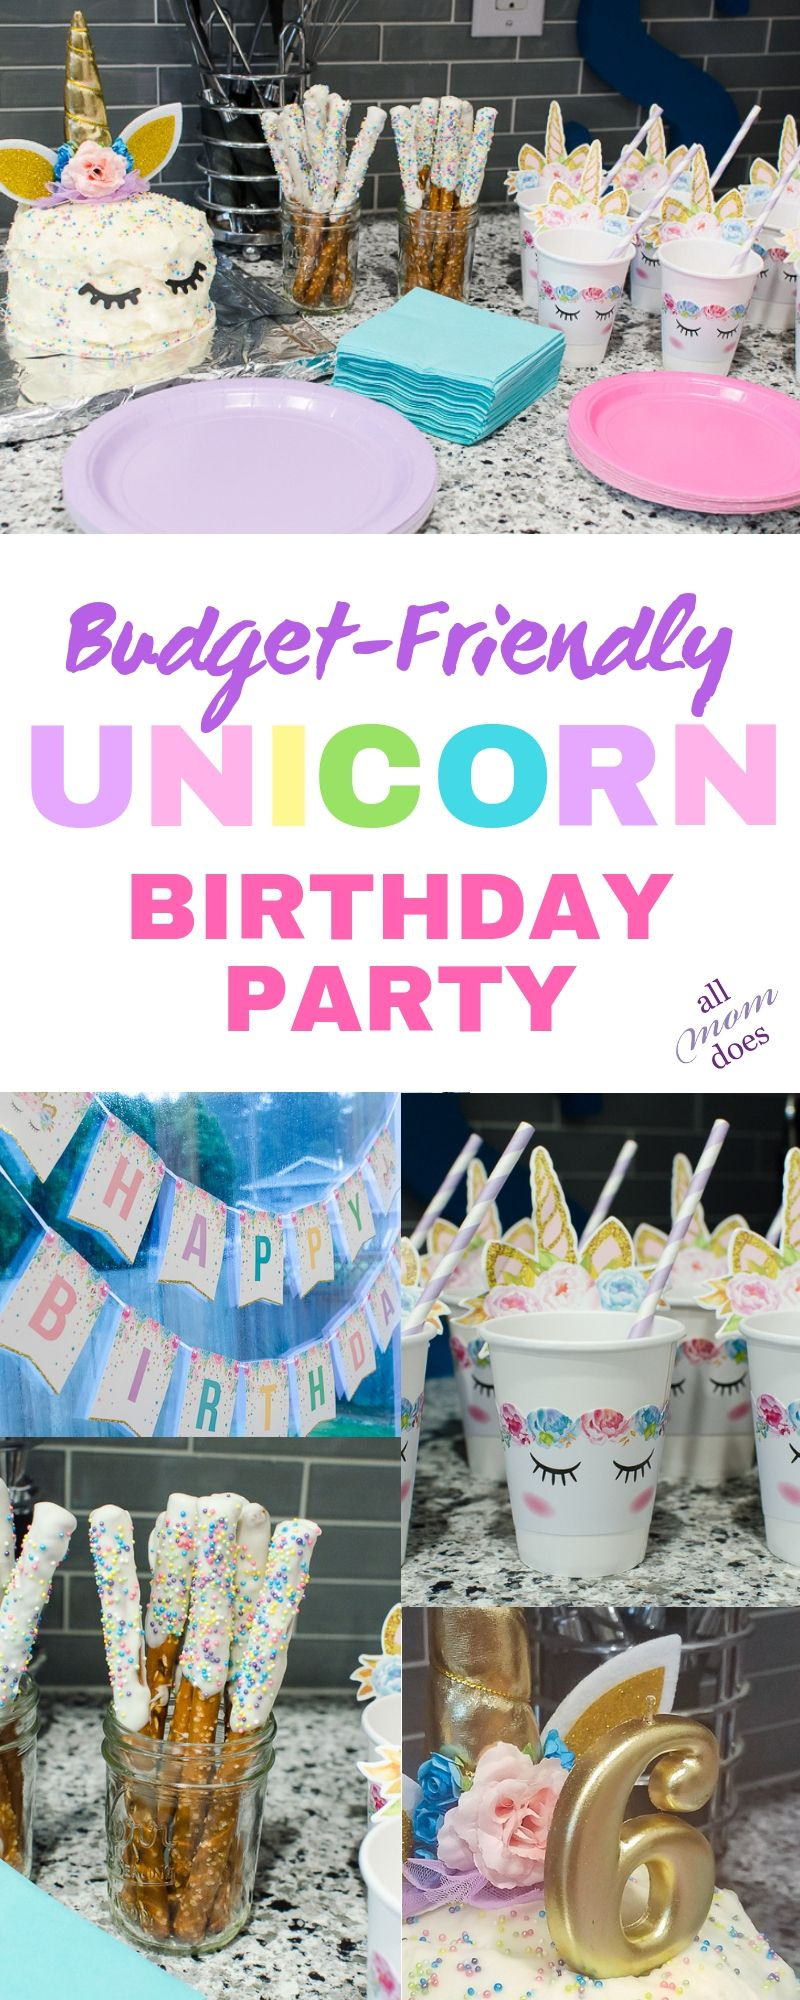 1st Birthday Party Ideas On A Budget.Budget Friendly Unicorn Birthday Party In 2019 Unicorn